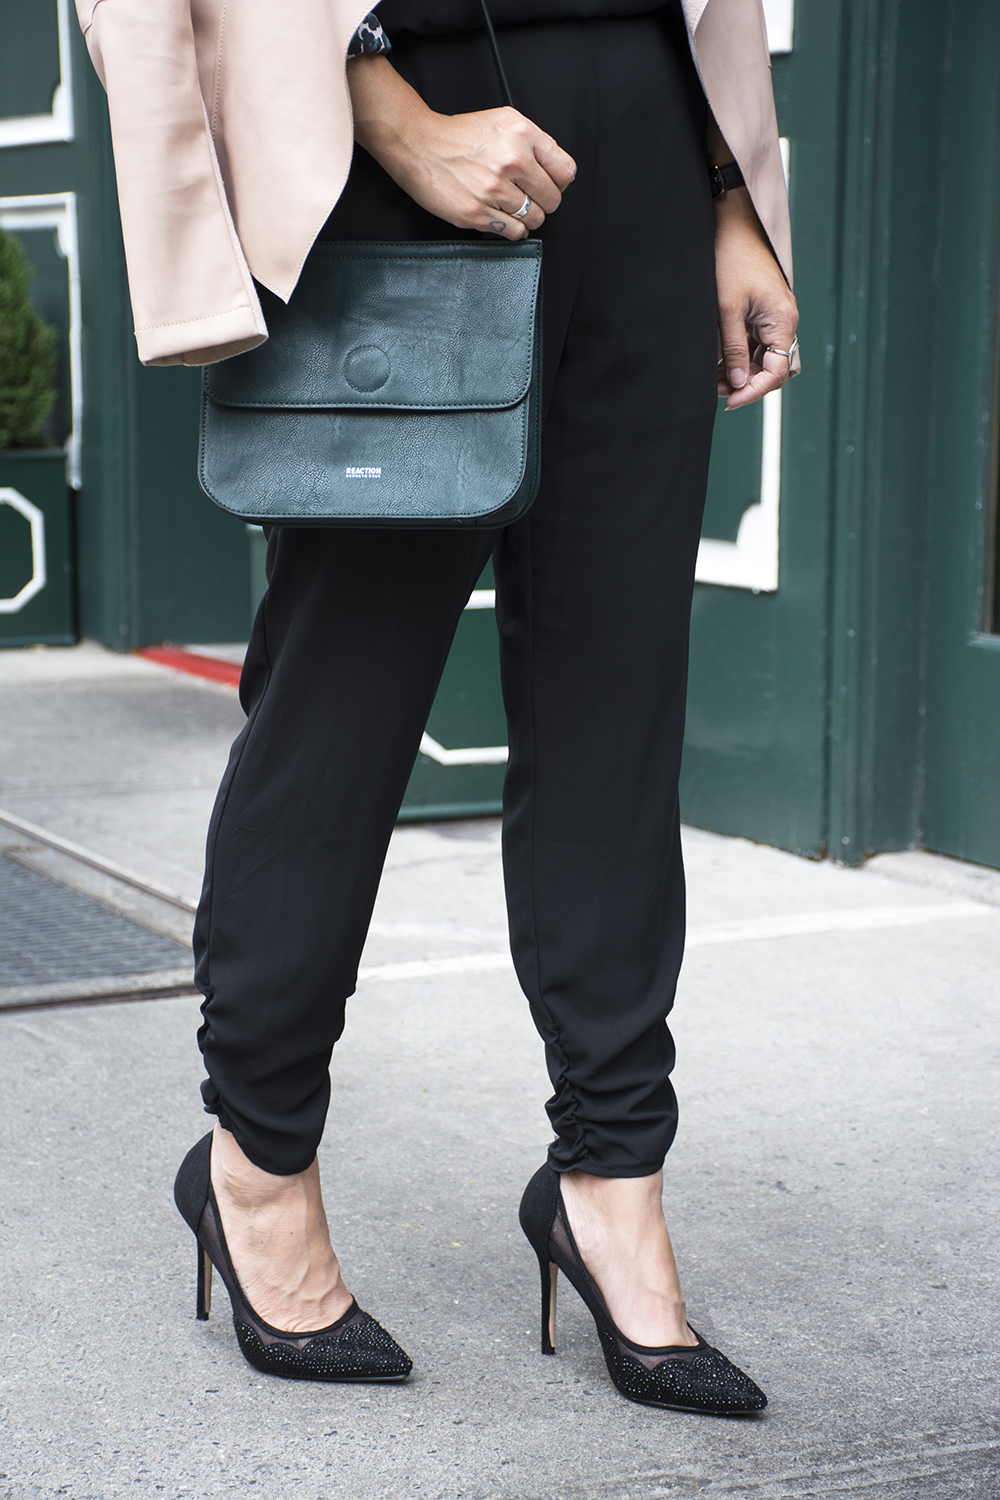 09nyc-westvillage-jumpsuit-scallop-heels-travel-style-fashion